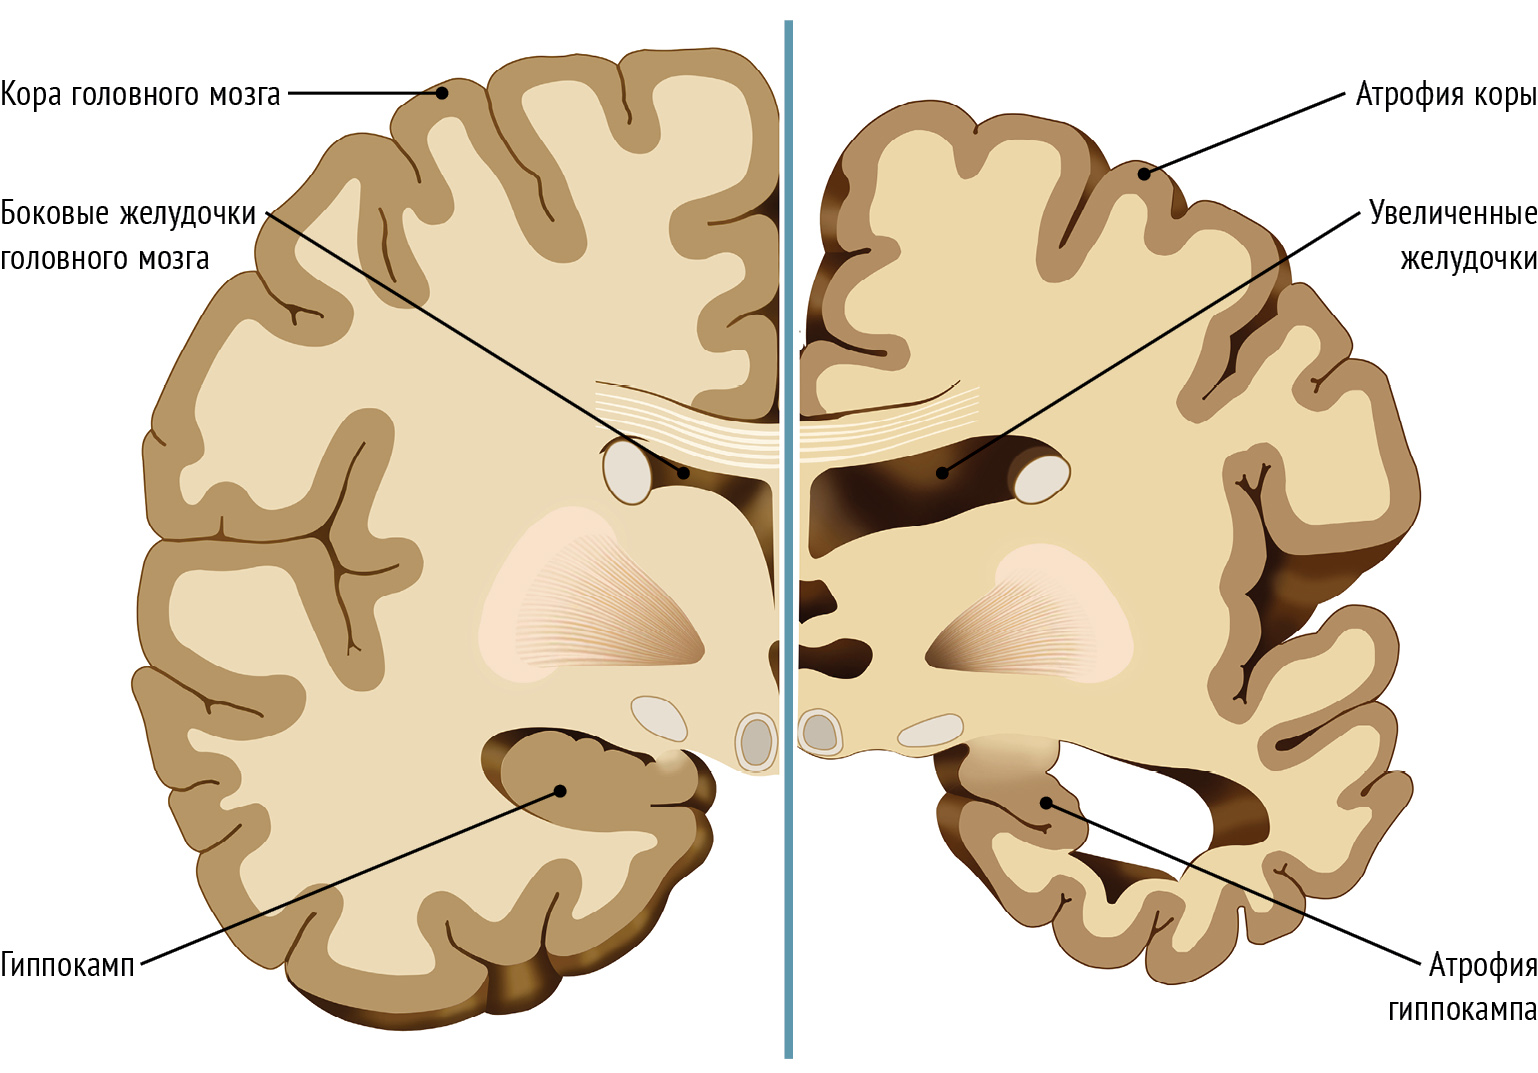 the causes and symptoms of alzheimers a degenerative brain illness Alzheimer's disease can cause a number of devastating effects if symptoms continue to progress without treatment since alzheimer's is a degenerative disease, symptoms are likely to worsen over time and possibly lead to the following outcomes.